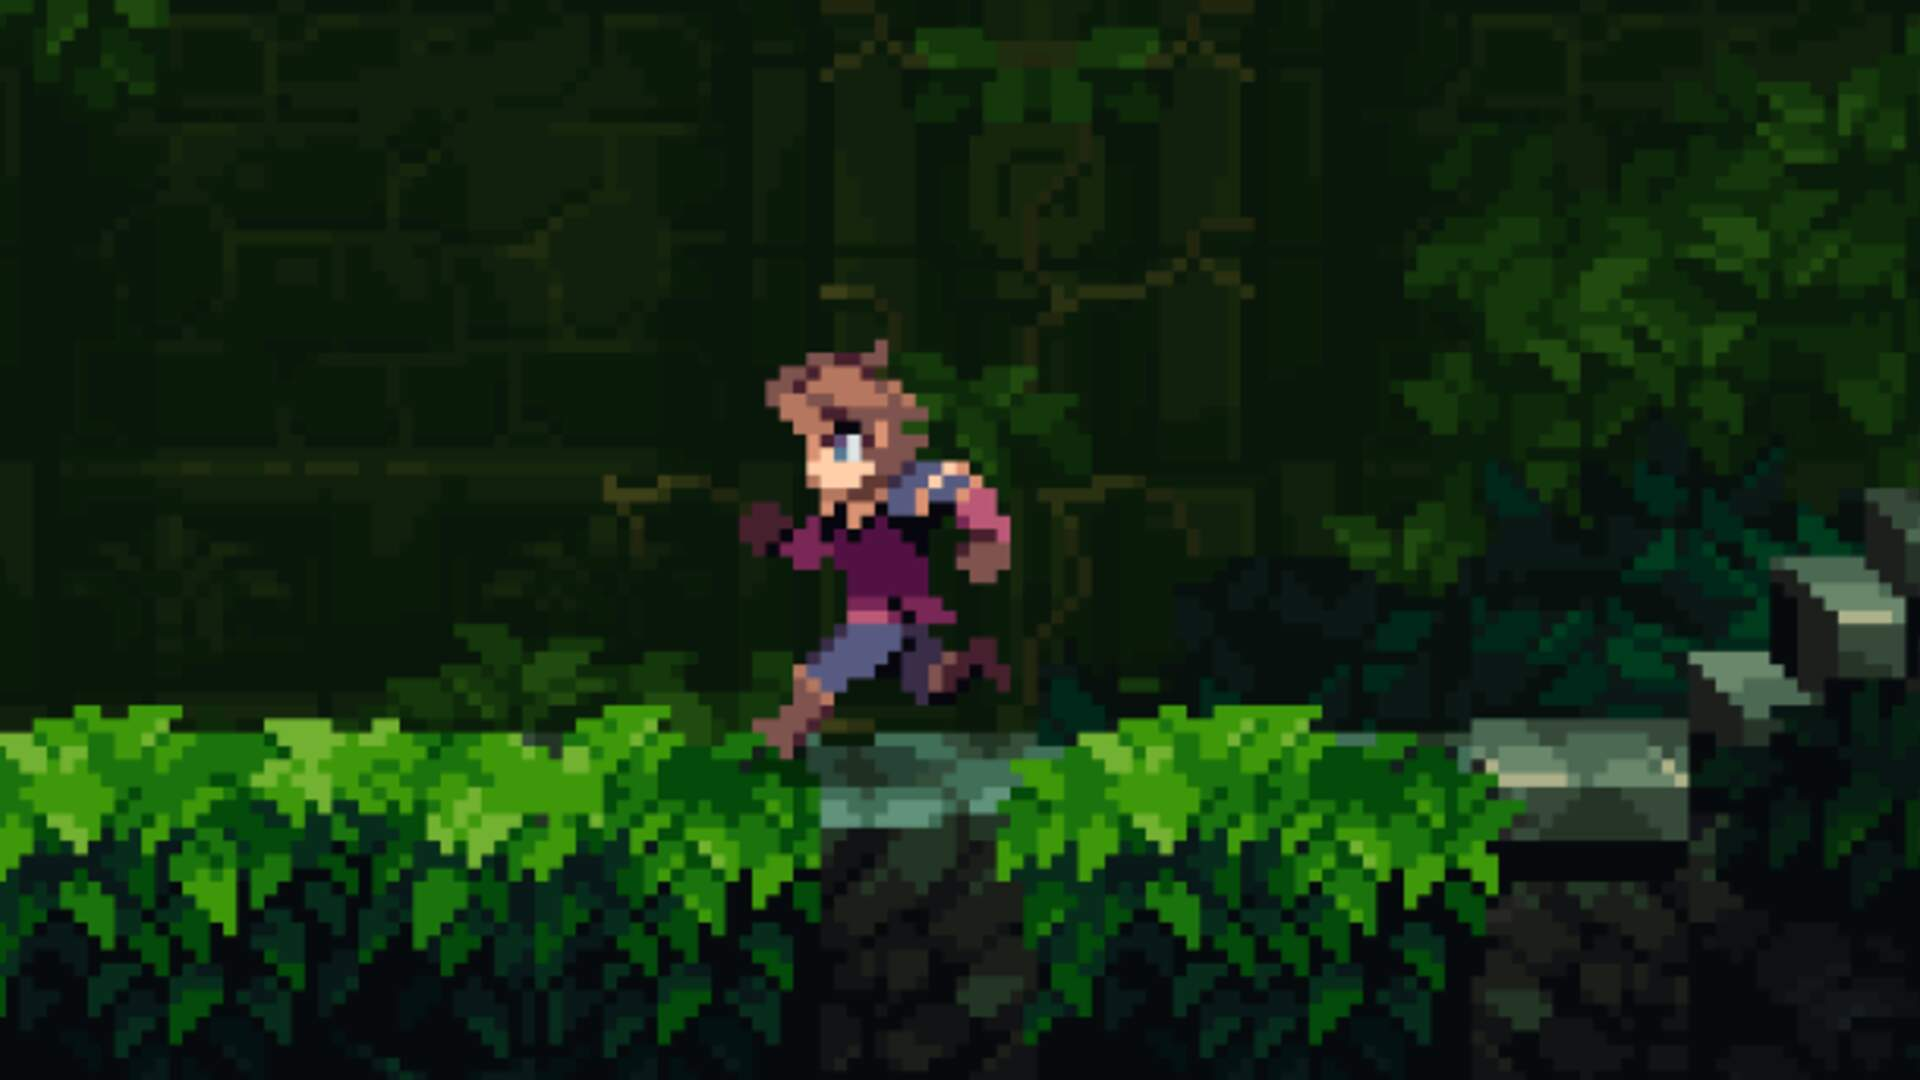 Chasm Release Date on PS4, Vita, and Steam Finally Confirmed